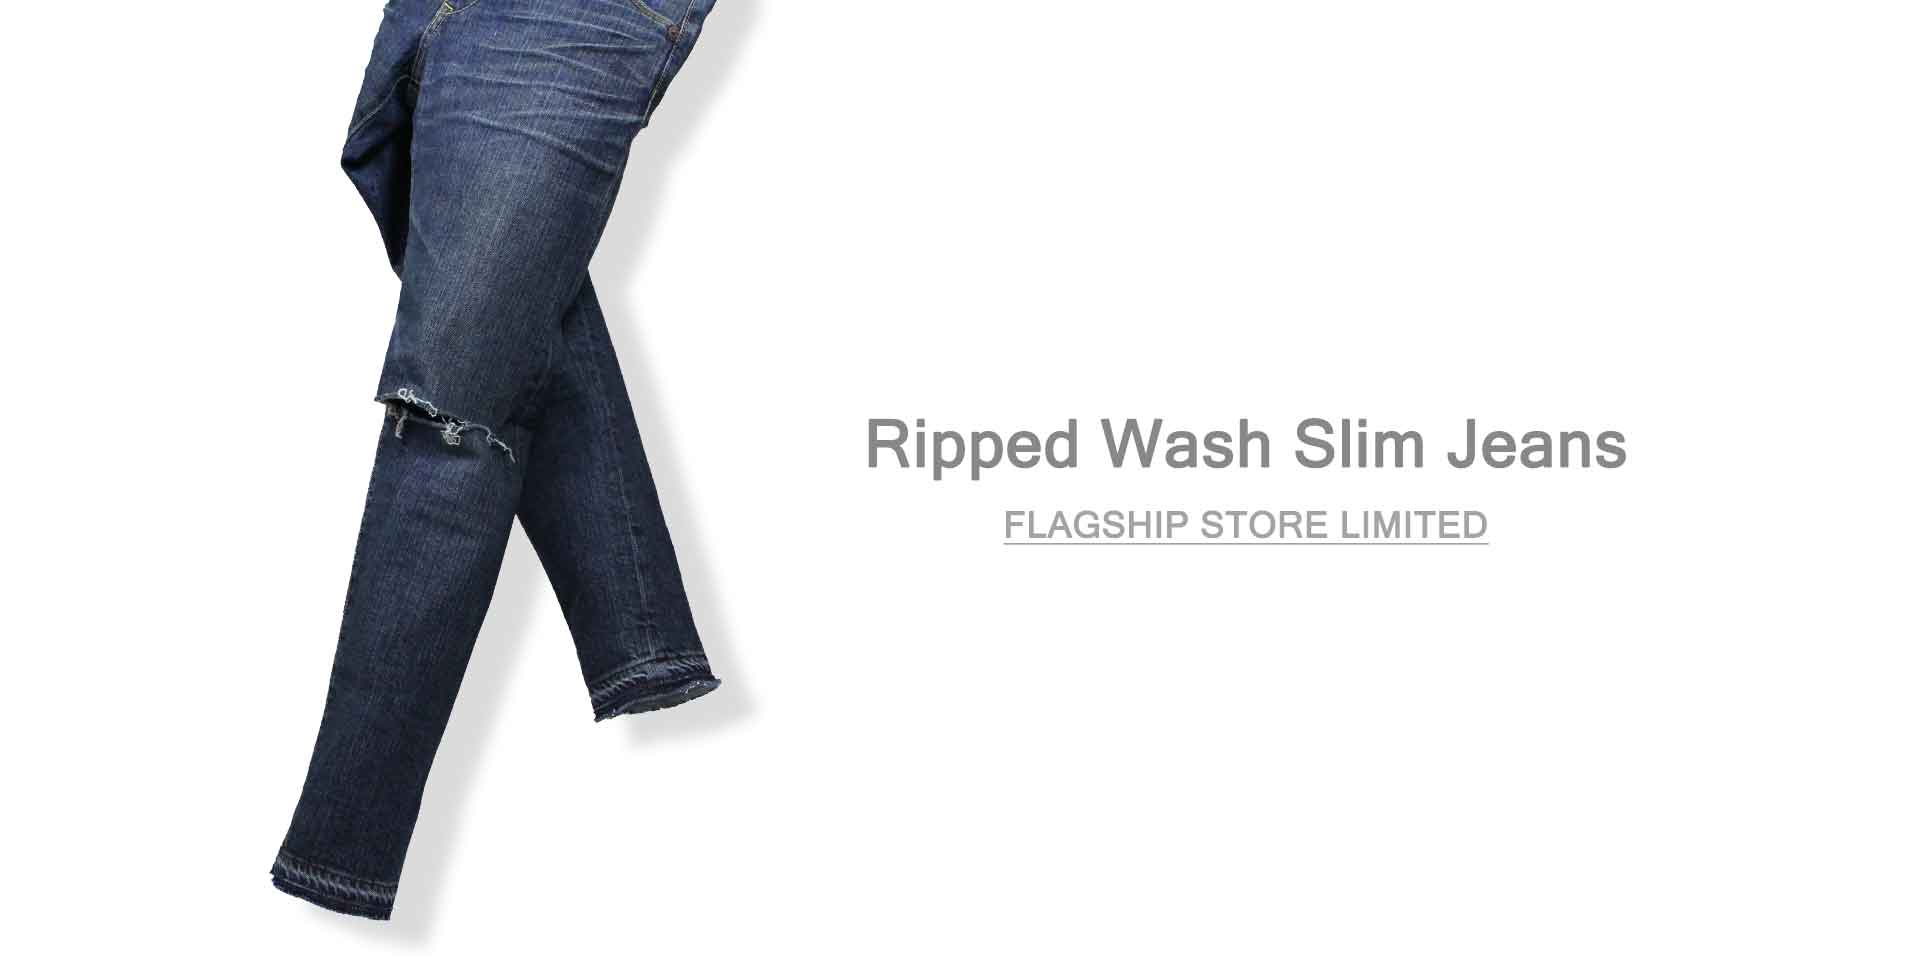 wjk ripped wash slim jeans